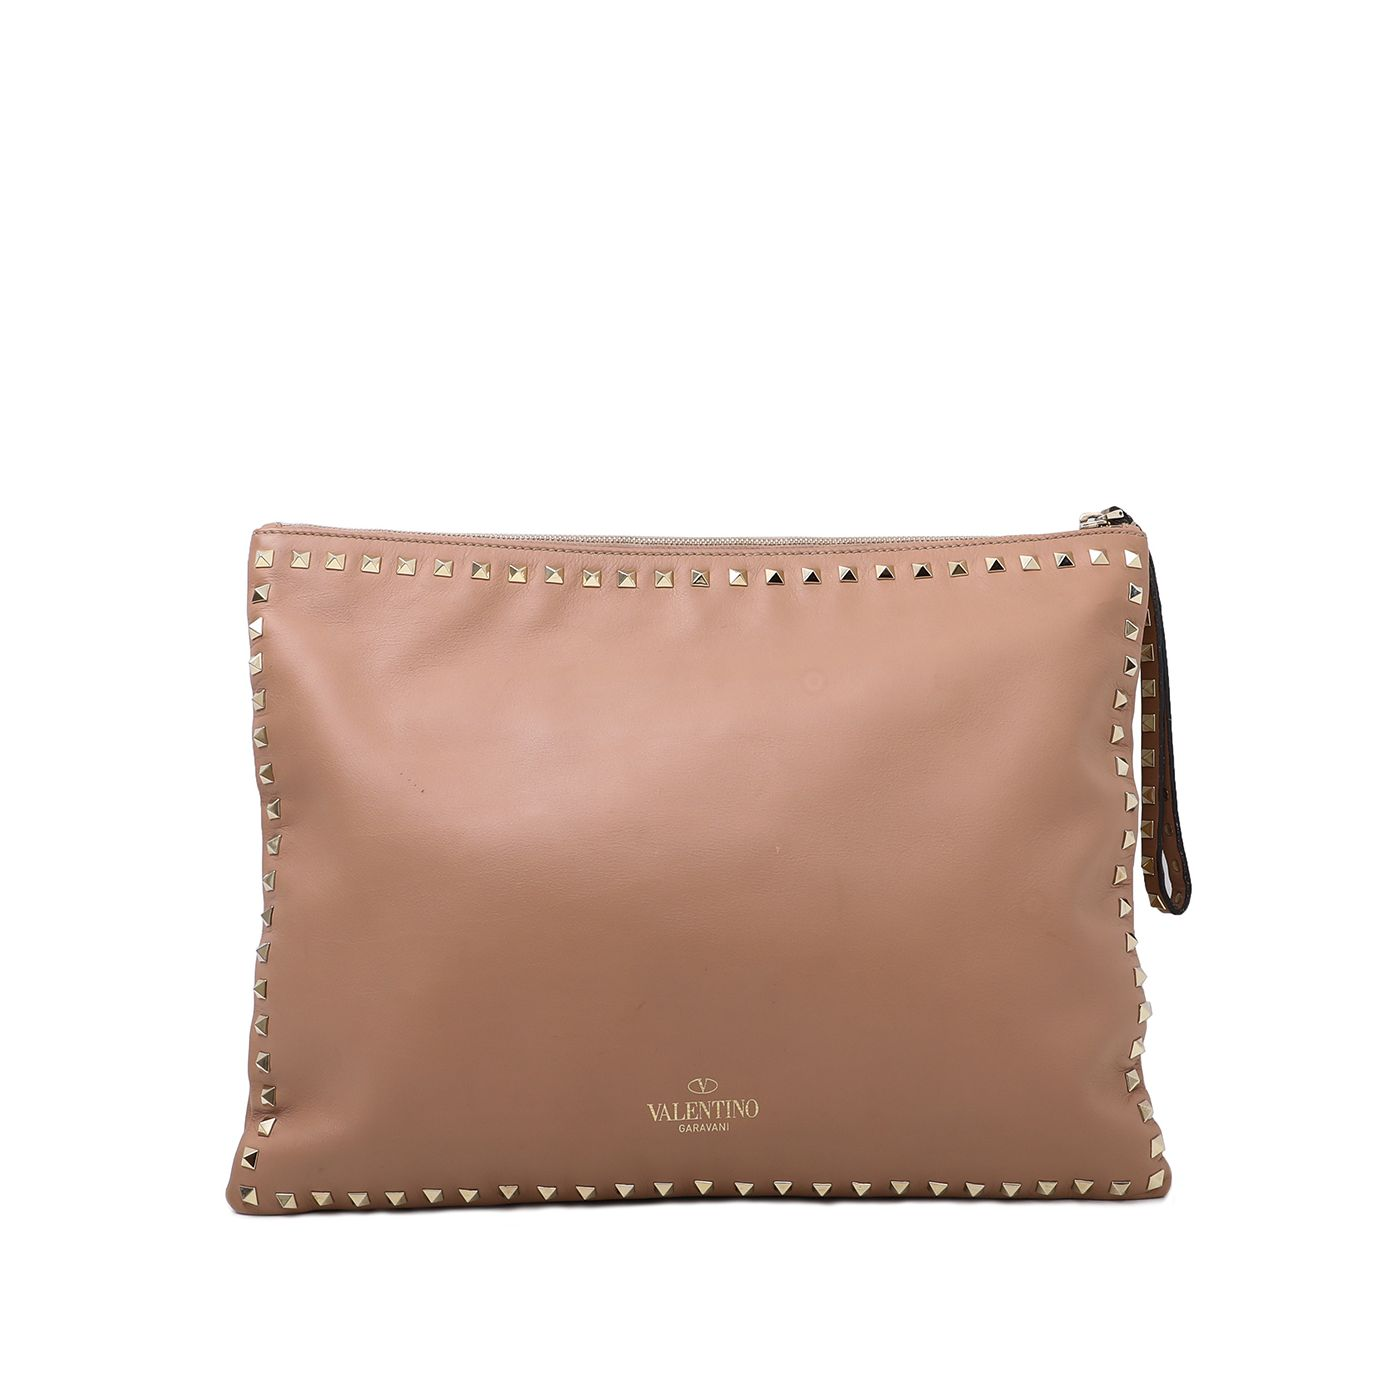 Valentino Nude Rockstud Zip Clutch Bag